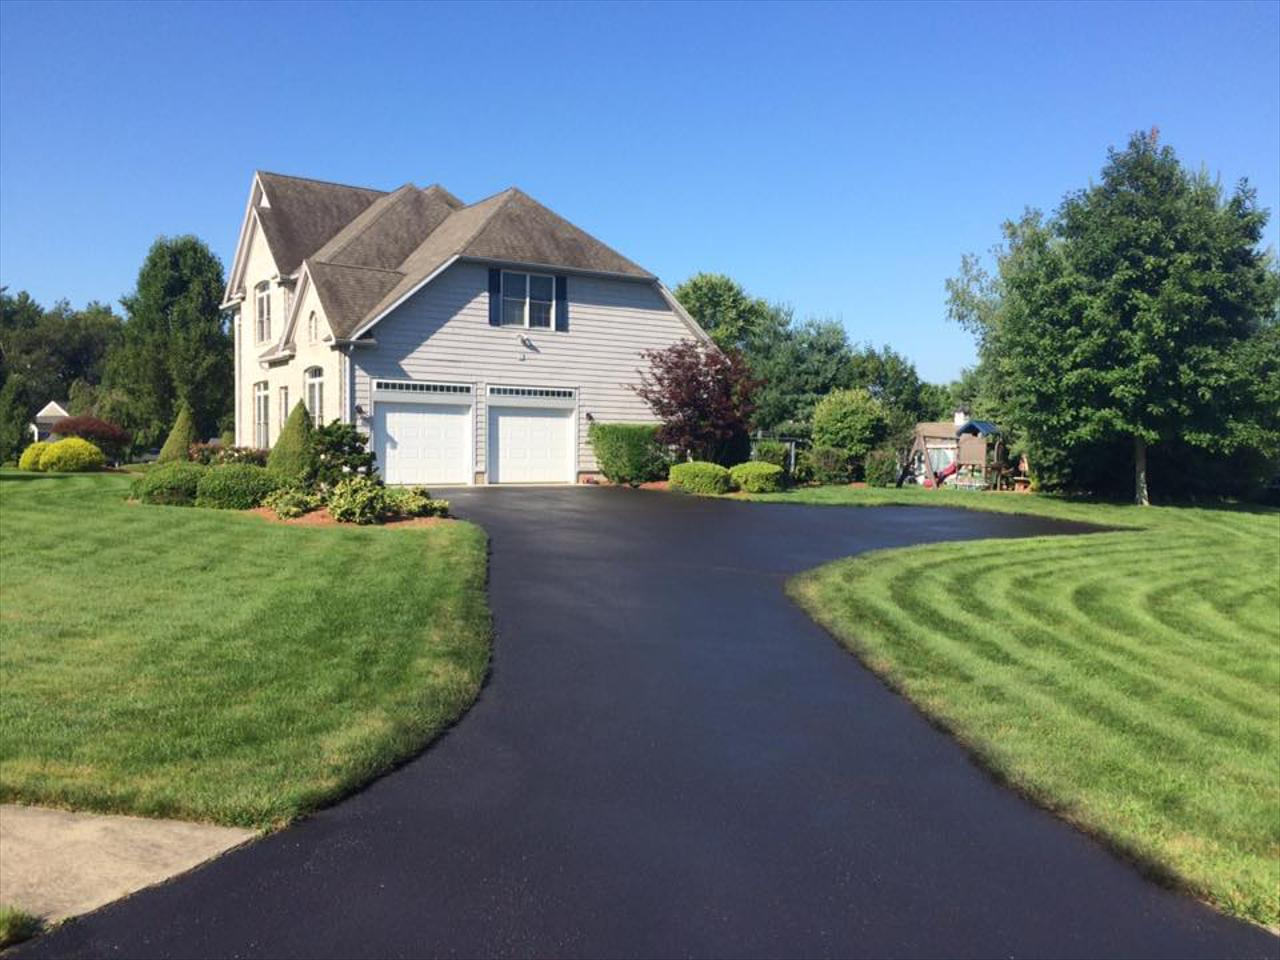 Ace Asphalt has served the community of Springfield, MA for over 15 years.